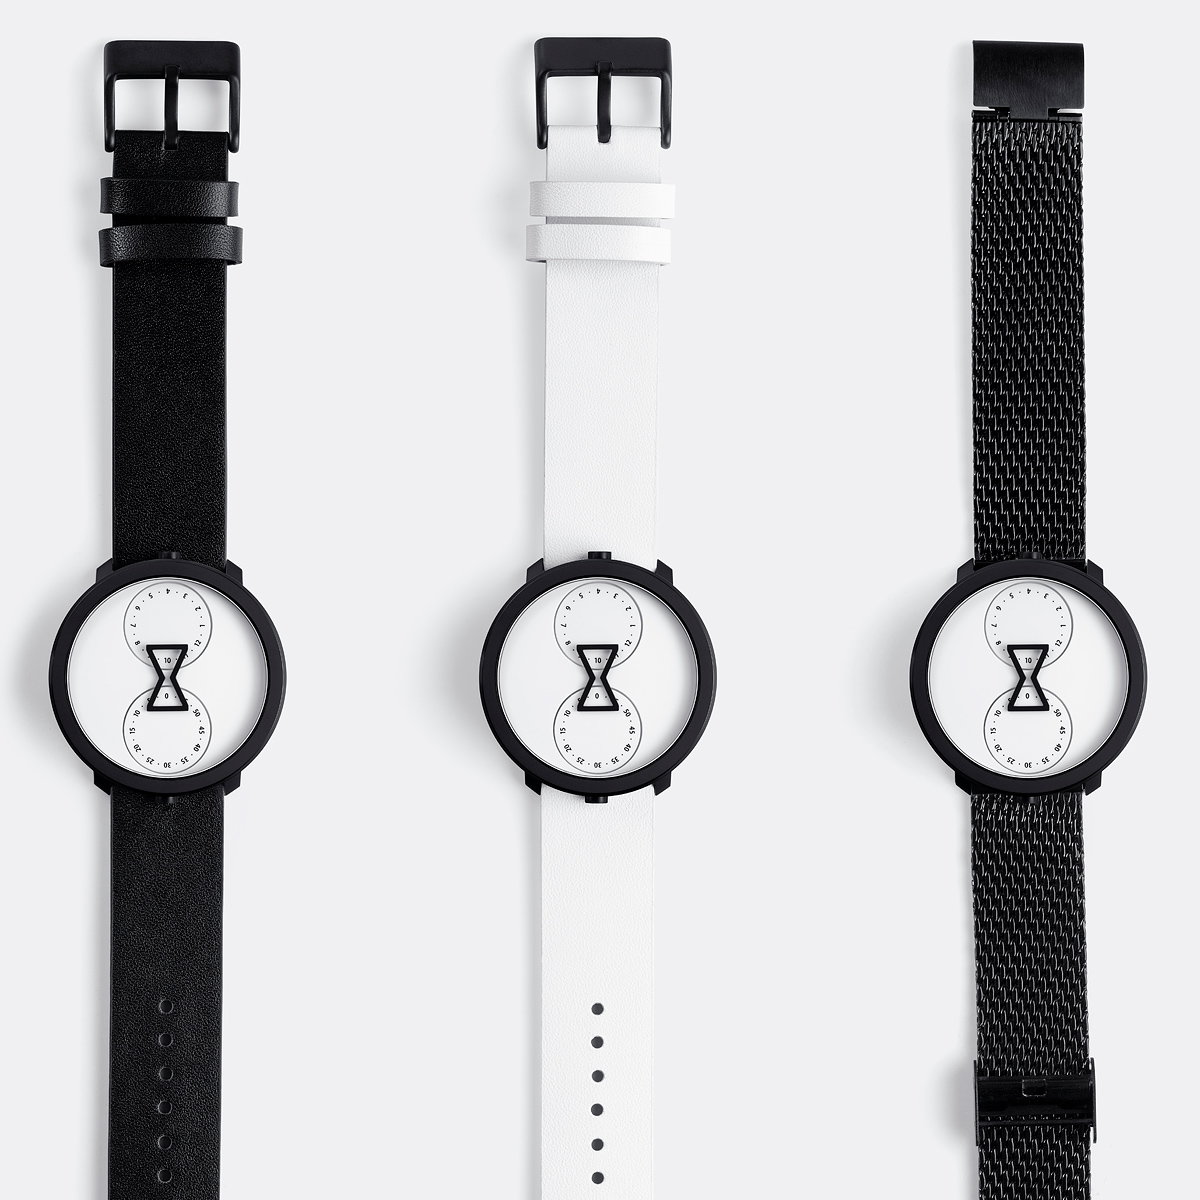 NU:RO by Anton and Irene Launched on Kickstarter